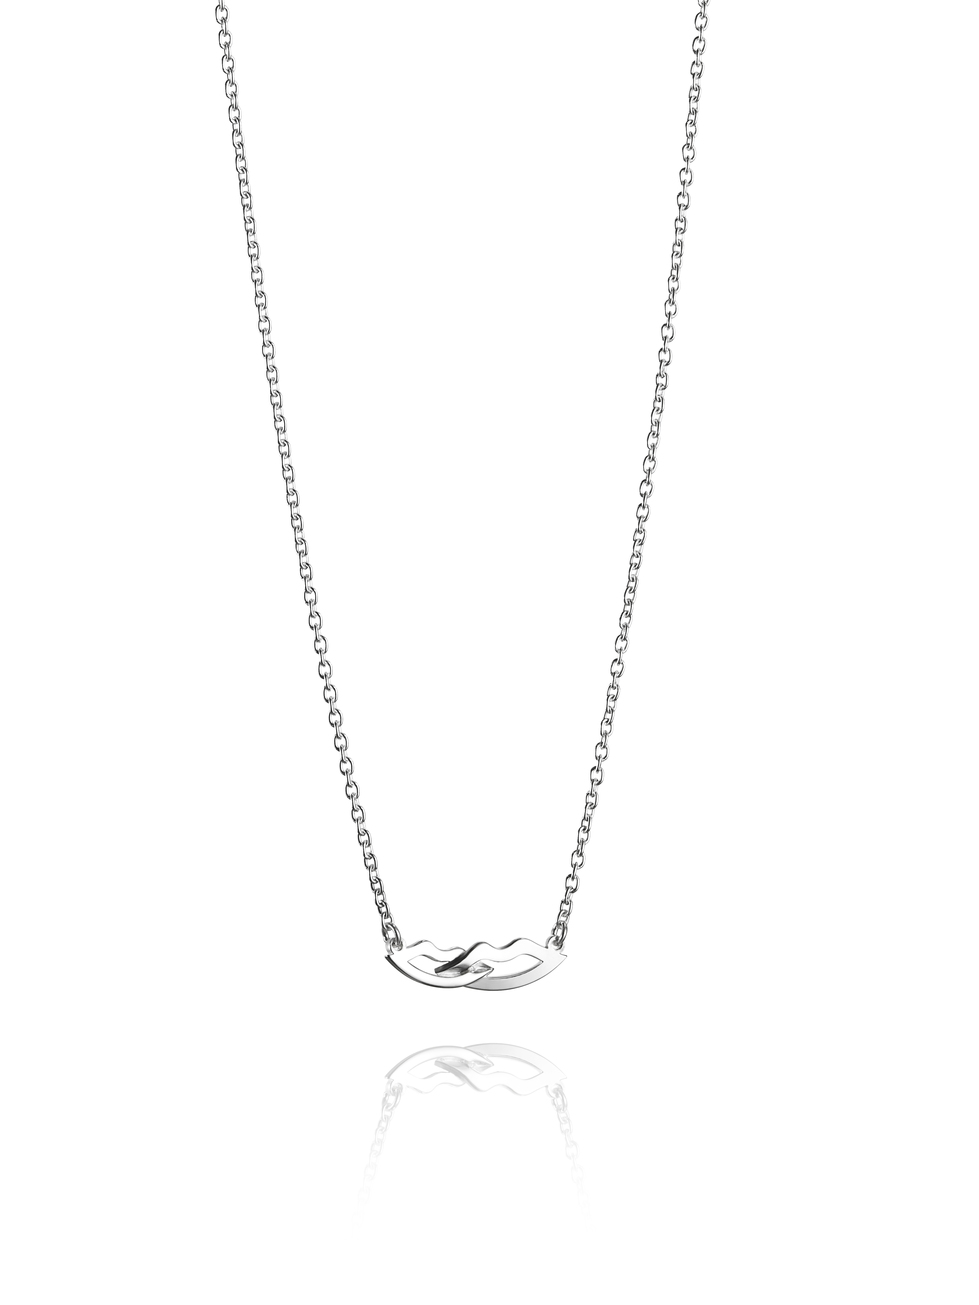 Girl Crush Necklace 10-100-01165(2)